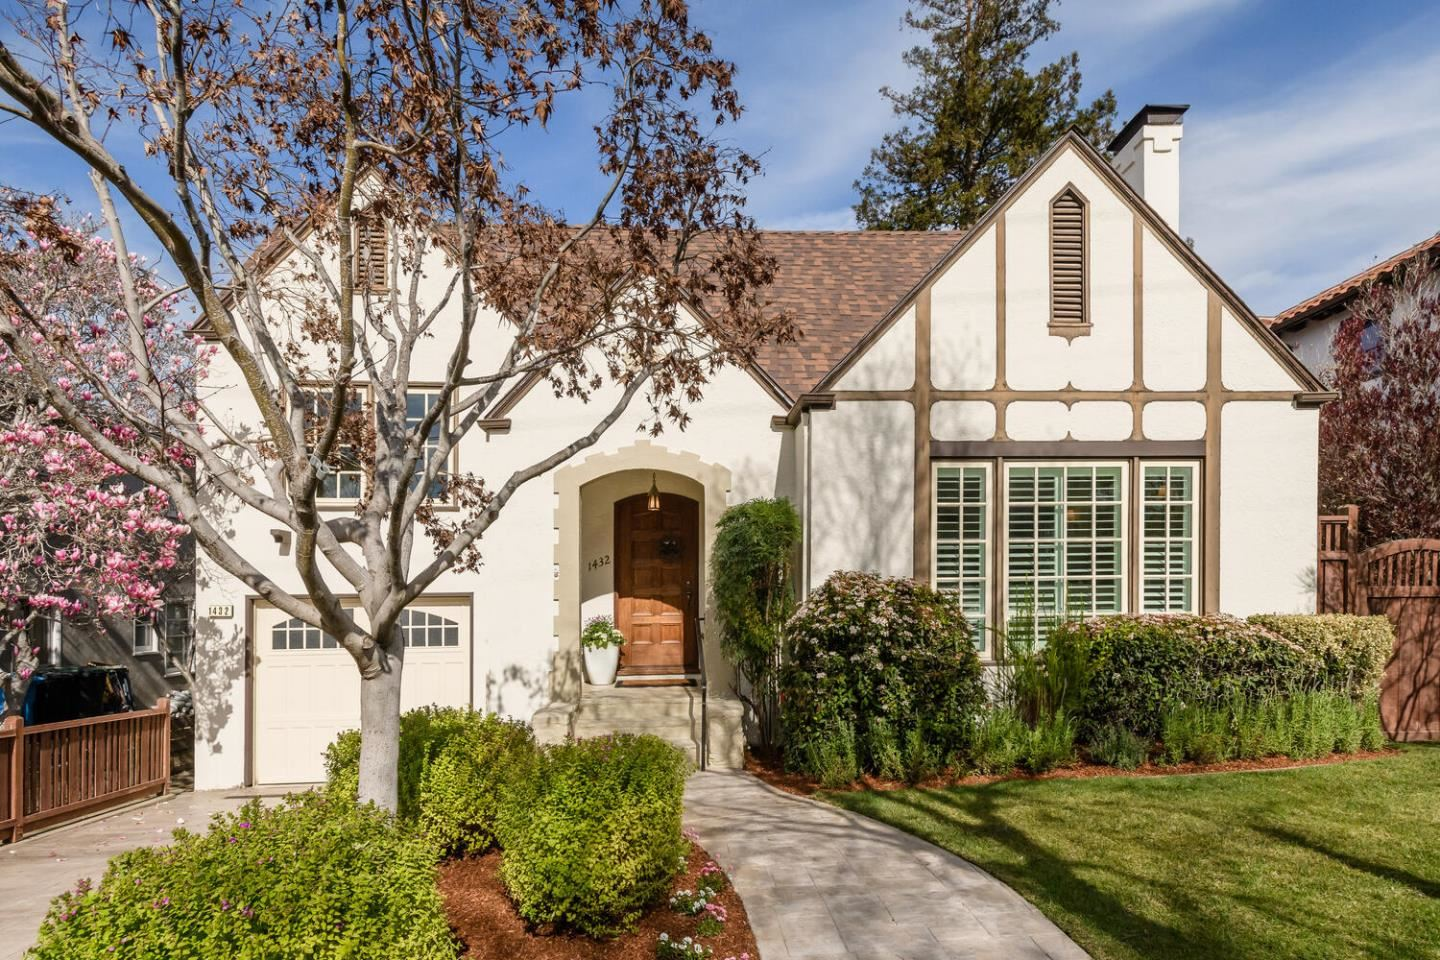 Photo for 1432 Vancouver AVE, BURLINGAME, CA 94010 (MLS # ML81830602)